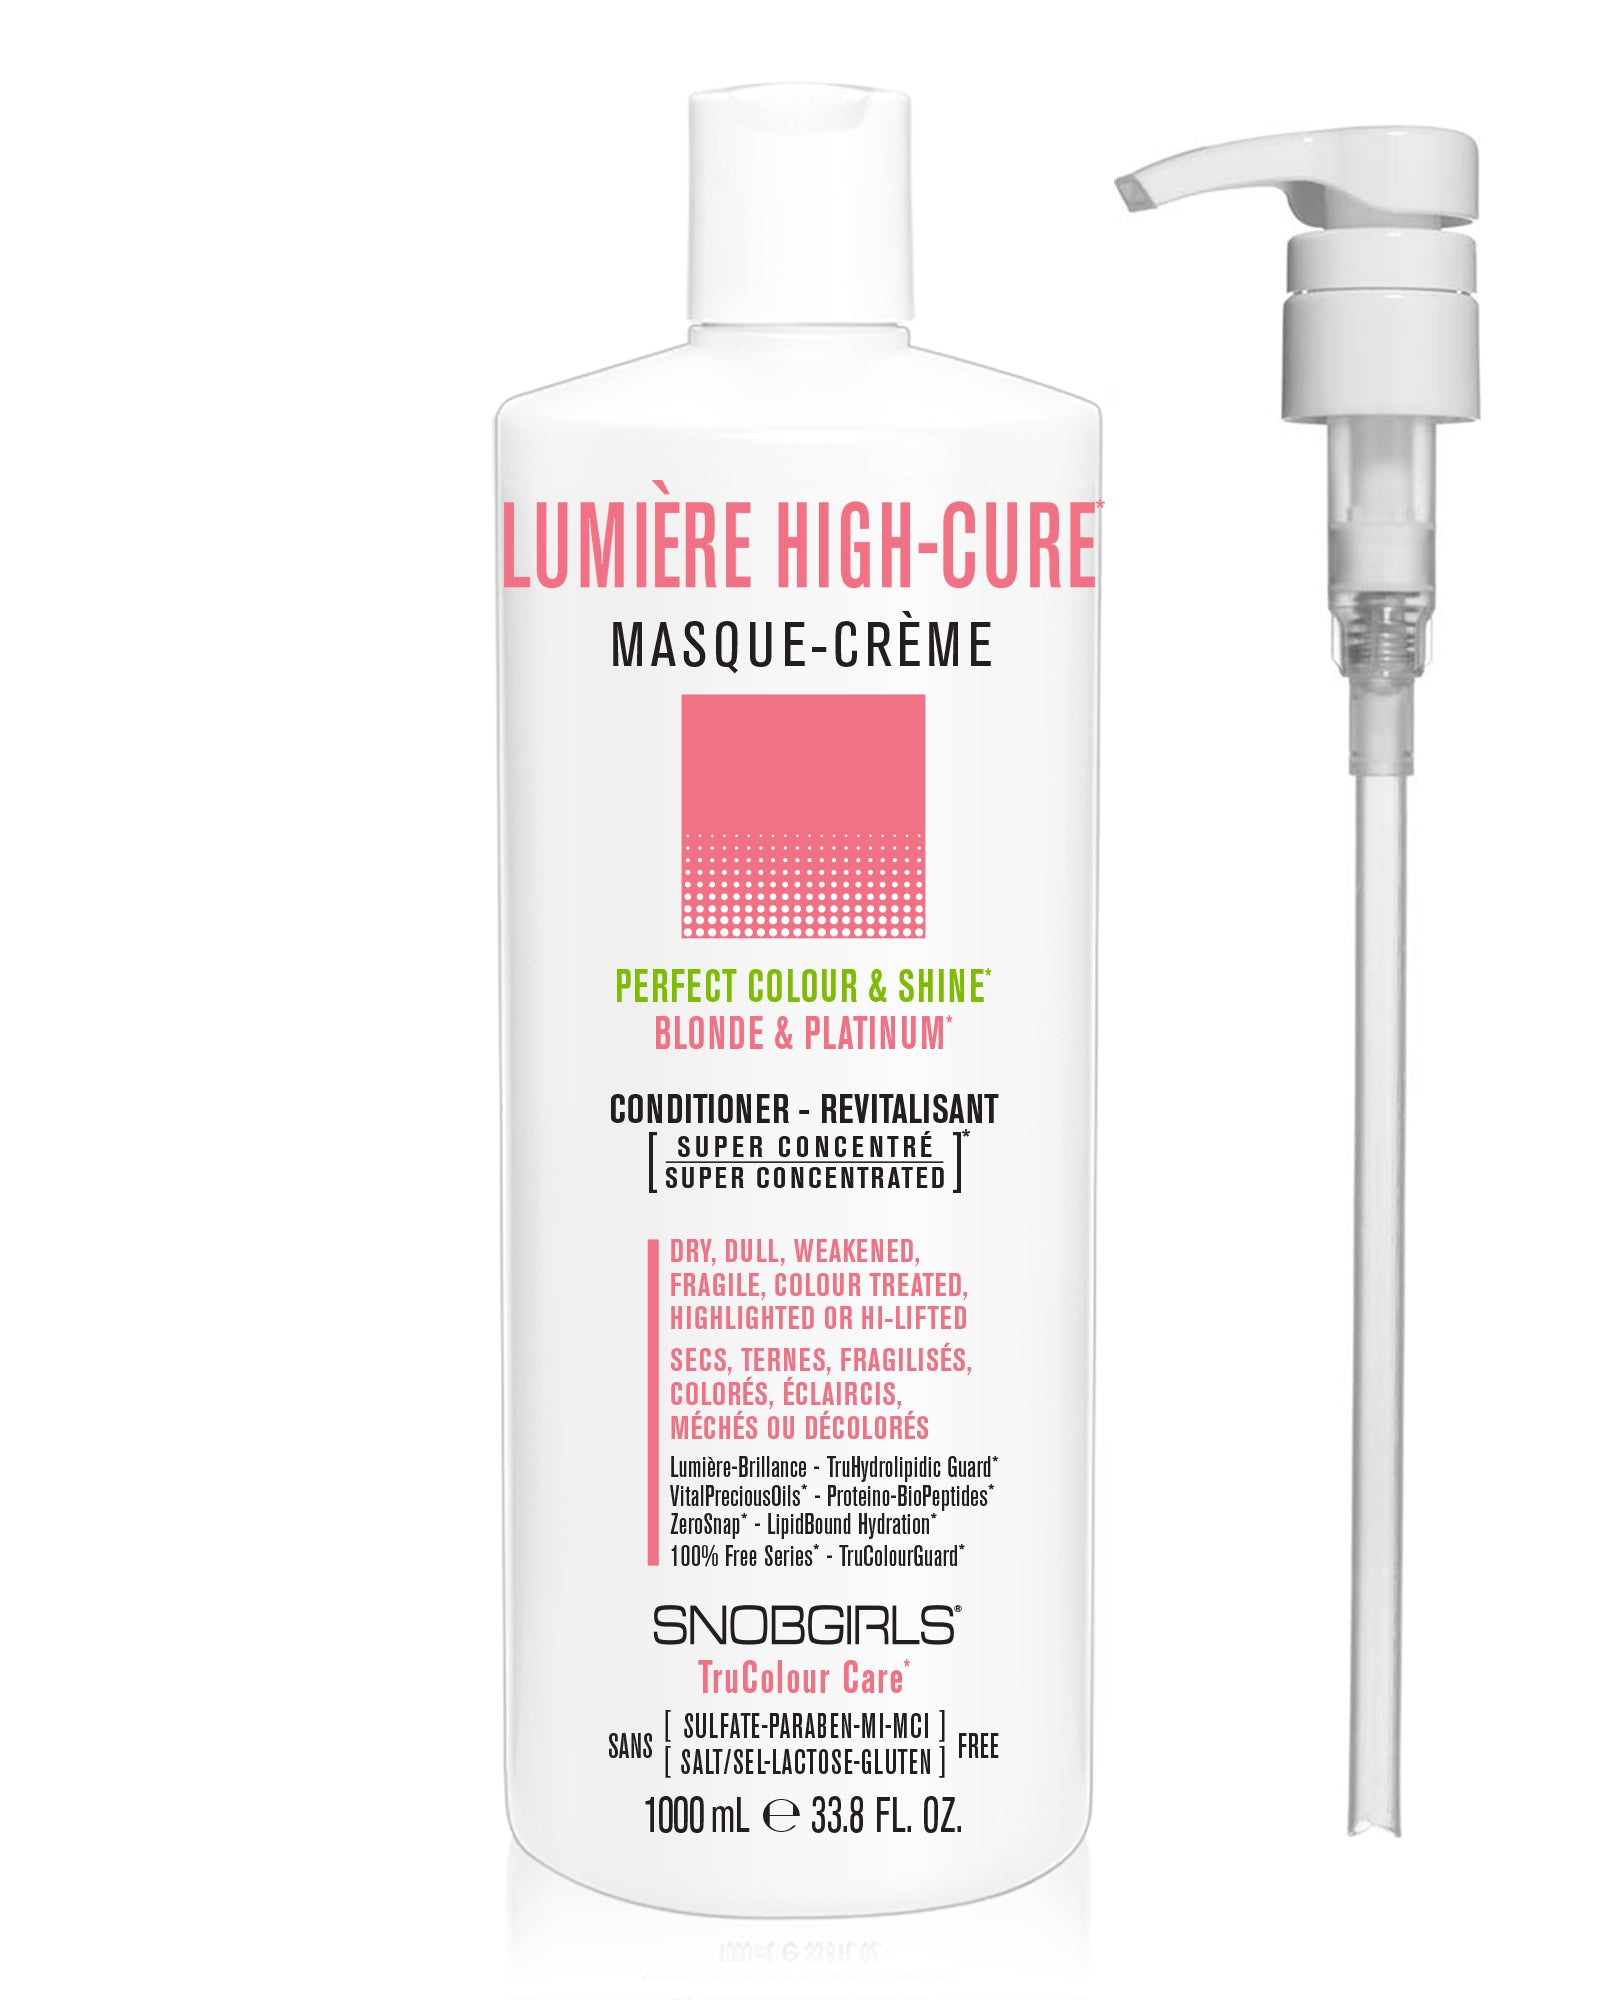 LUMIERE HIGH-CURE Perfect Colour & Shine Masque-Creme (conditioner) - SNOBGIRLS.com